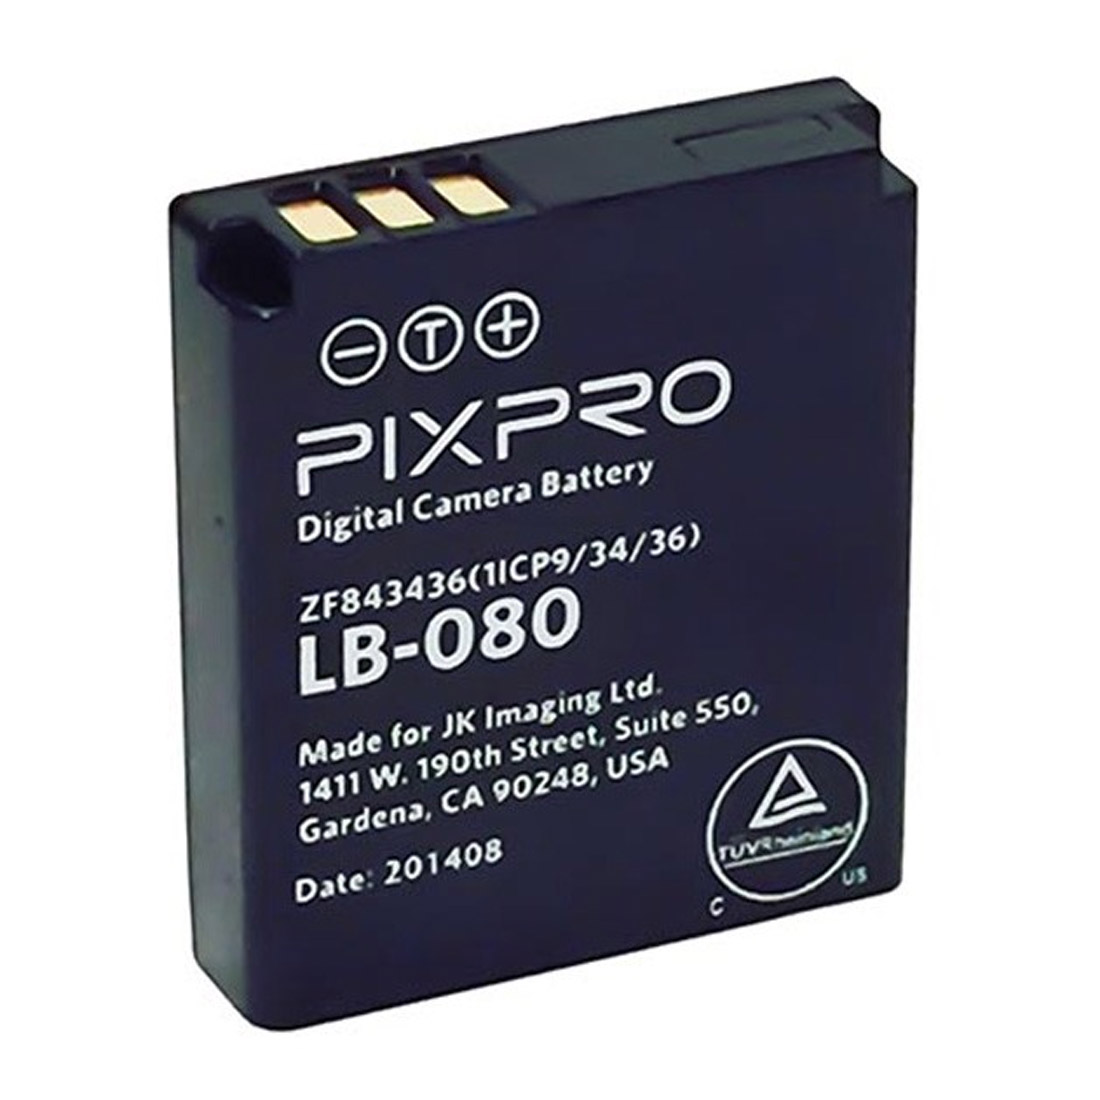 Kodak LB-080 Compact Kodak Battery for PIXIPRO SP360